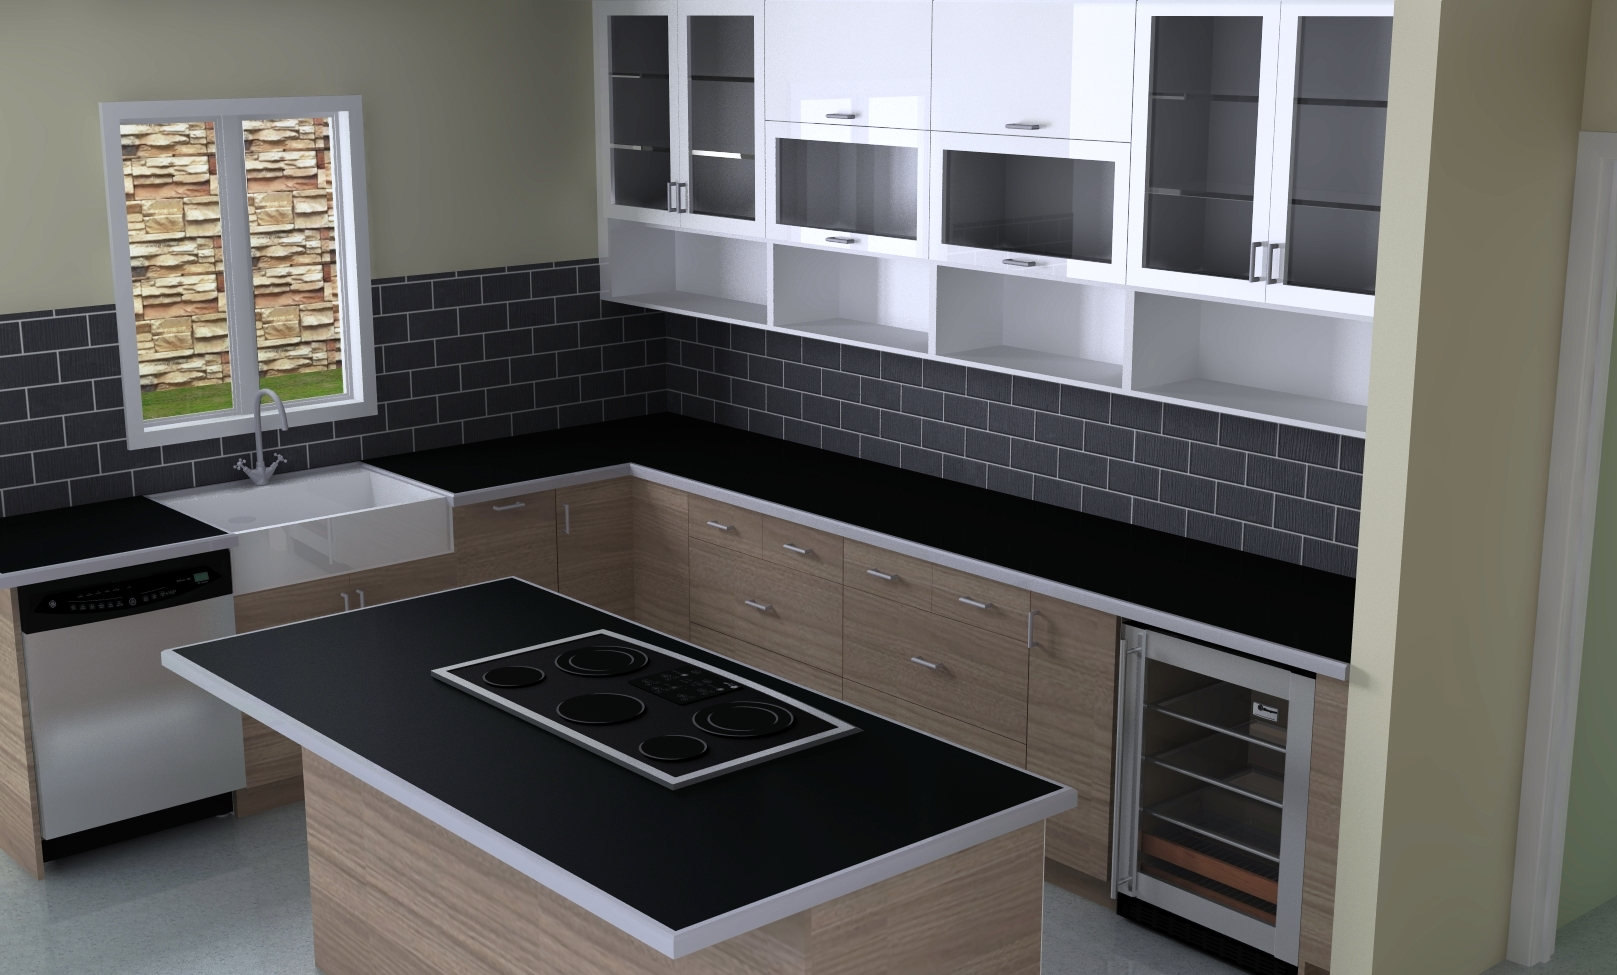 Ikea Kitchen Design Service Not Just Another Pretty Ikea Kitchen Design